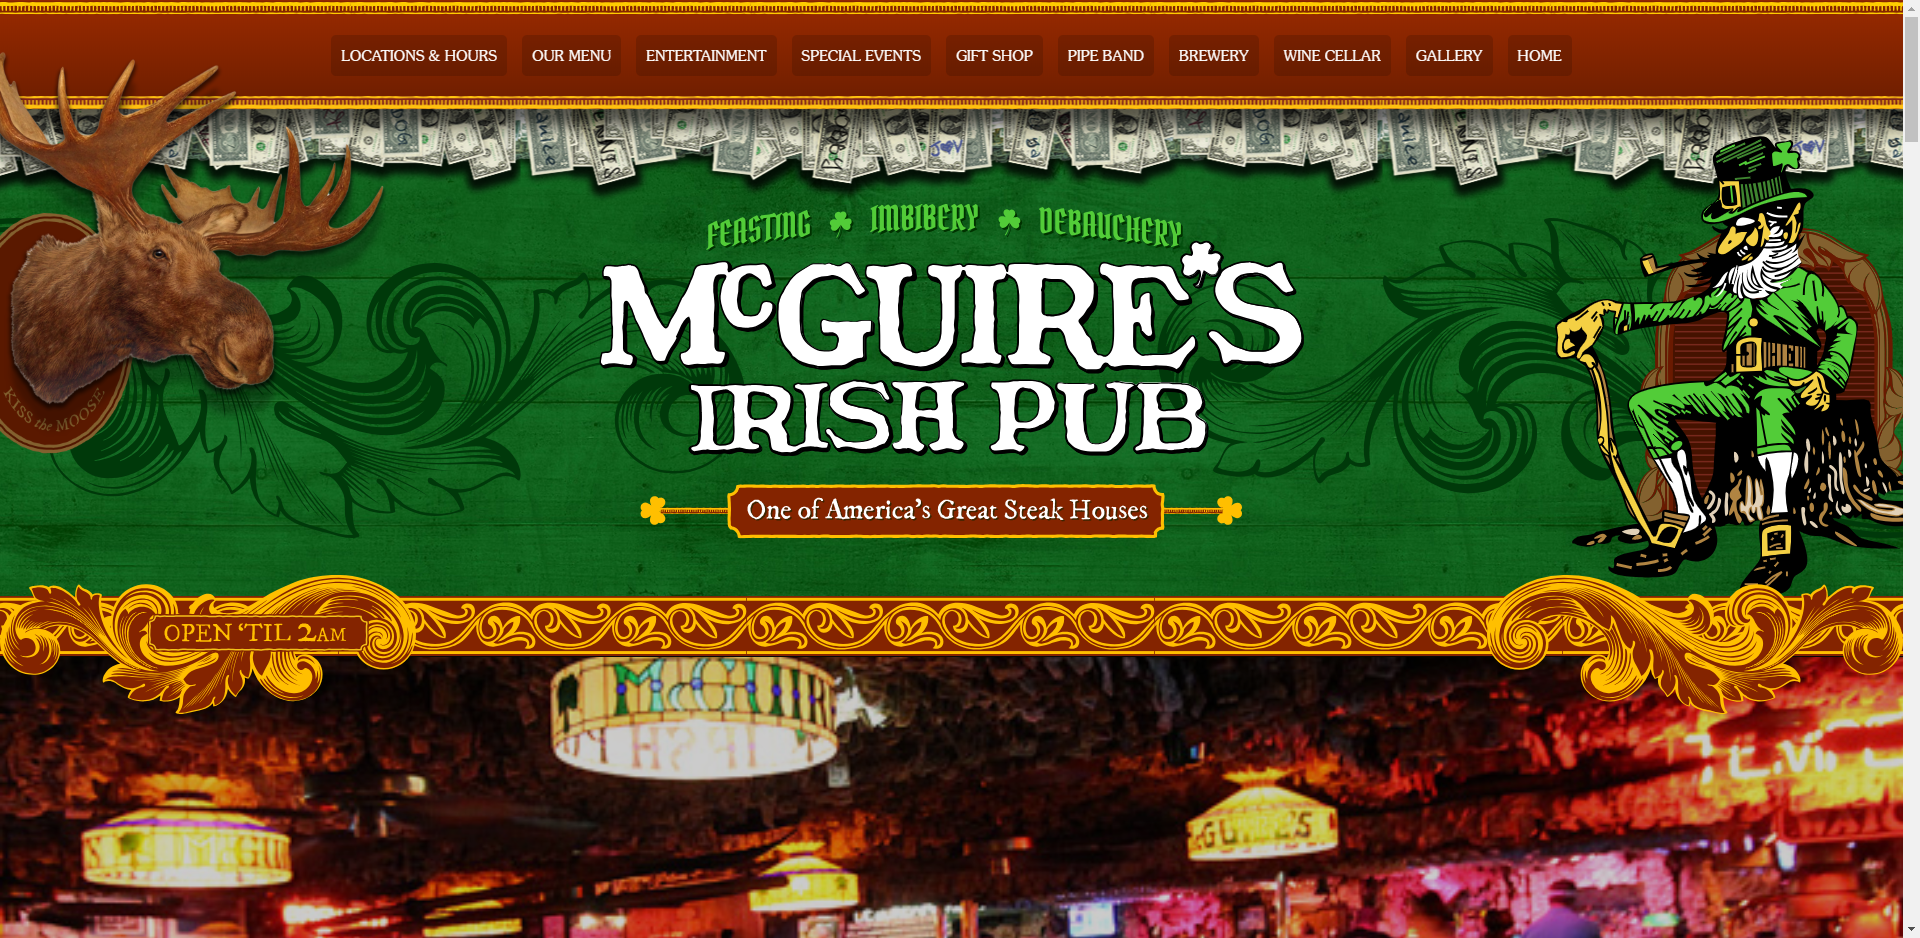 McGuires Irish Pub website screenshot